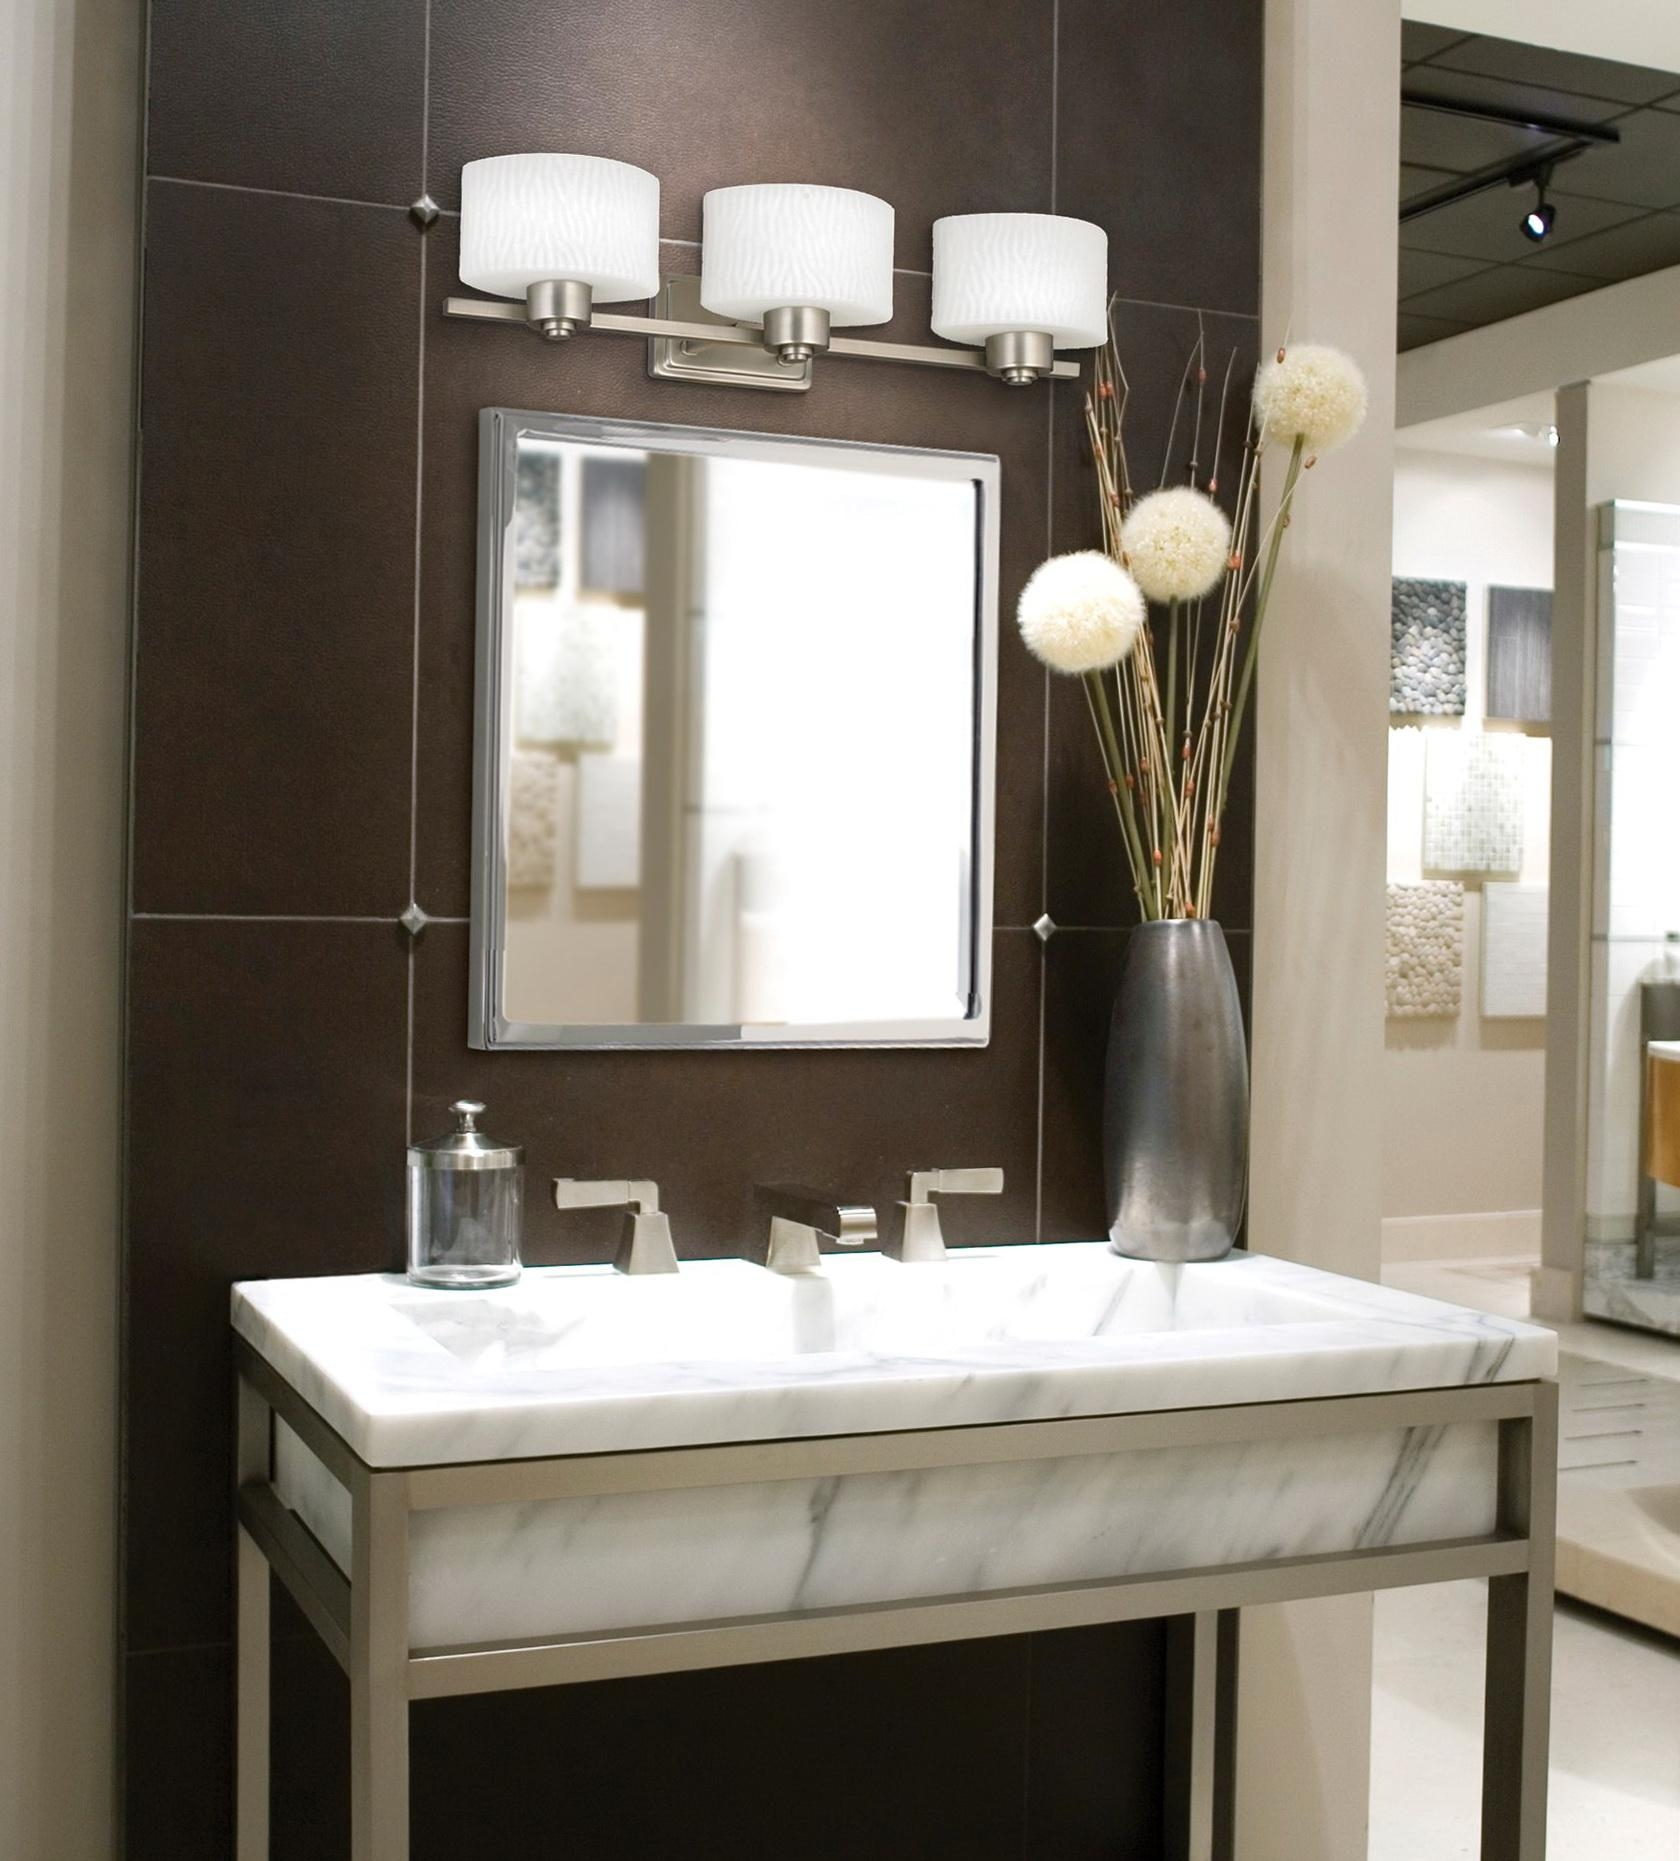 Wondrous Bathroom Vanity Mirrors For Com Ideas Brushed Nickel In Lights For Bathroom Mirrors (View 17 of 20)